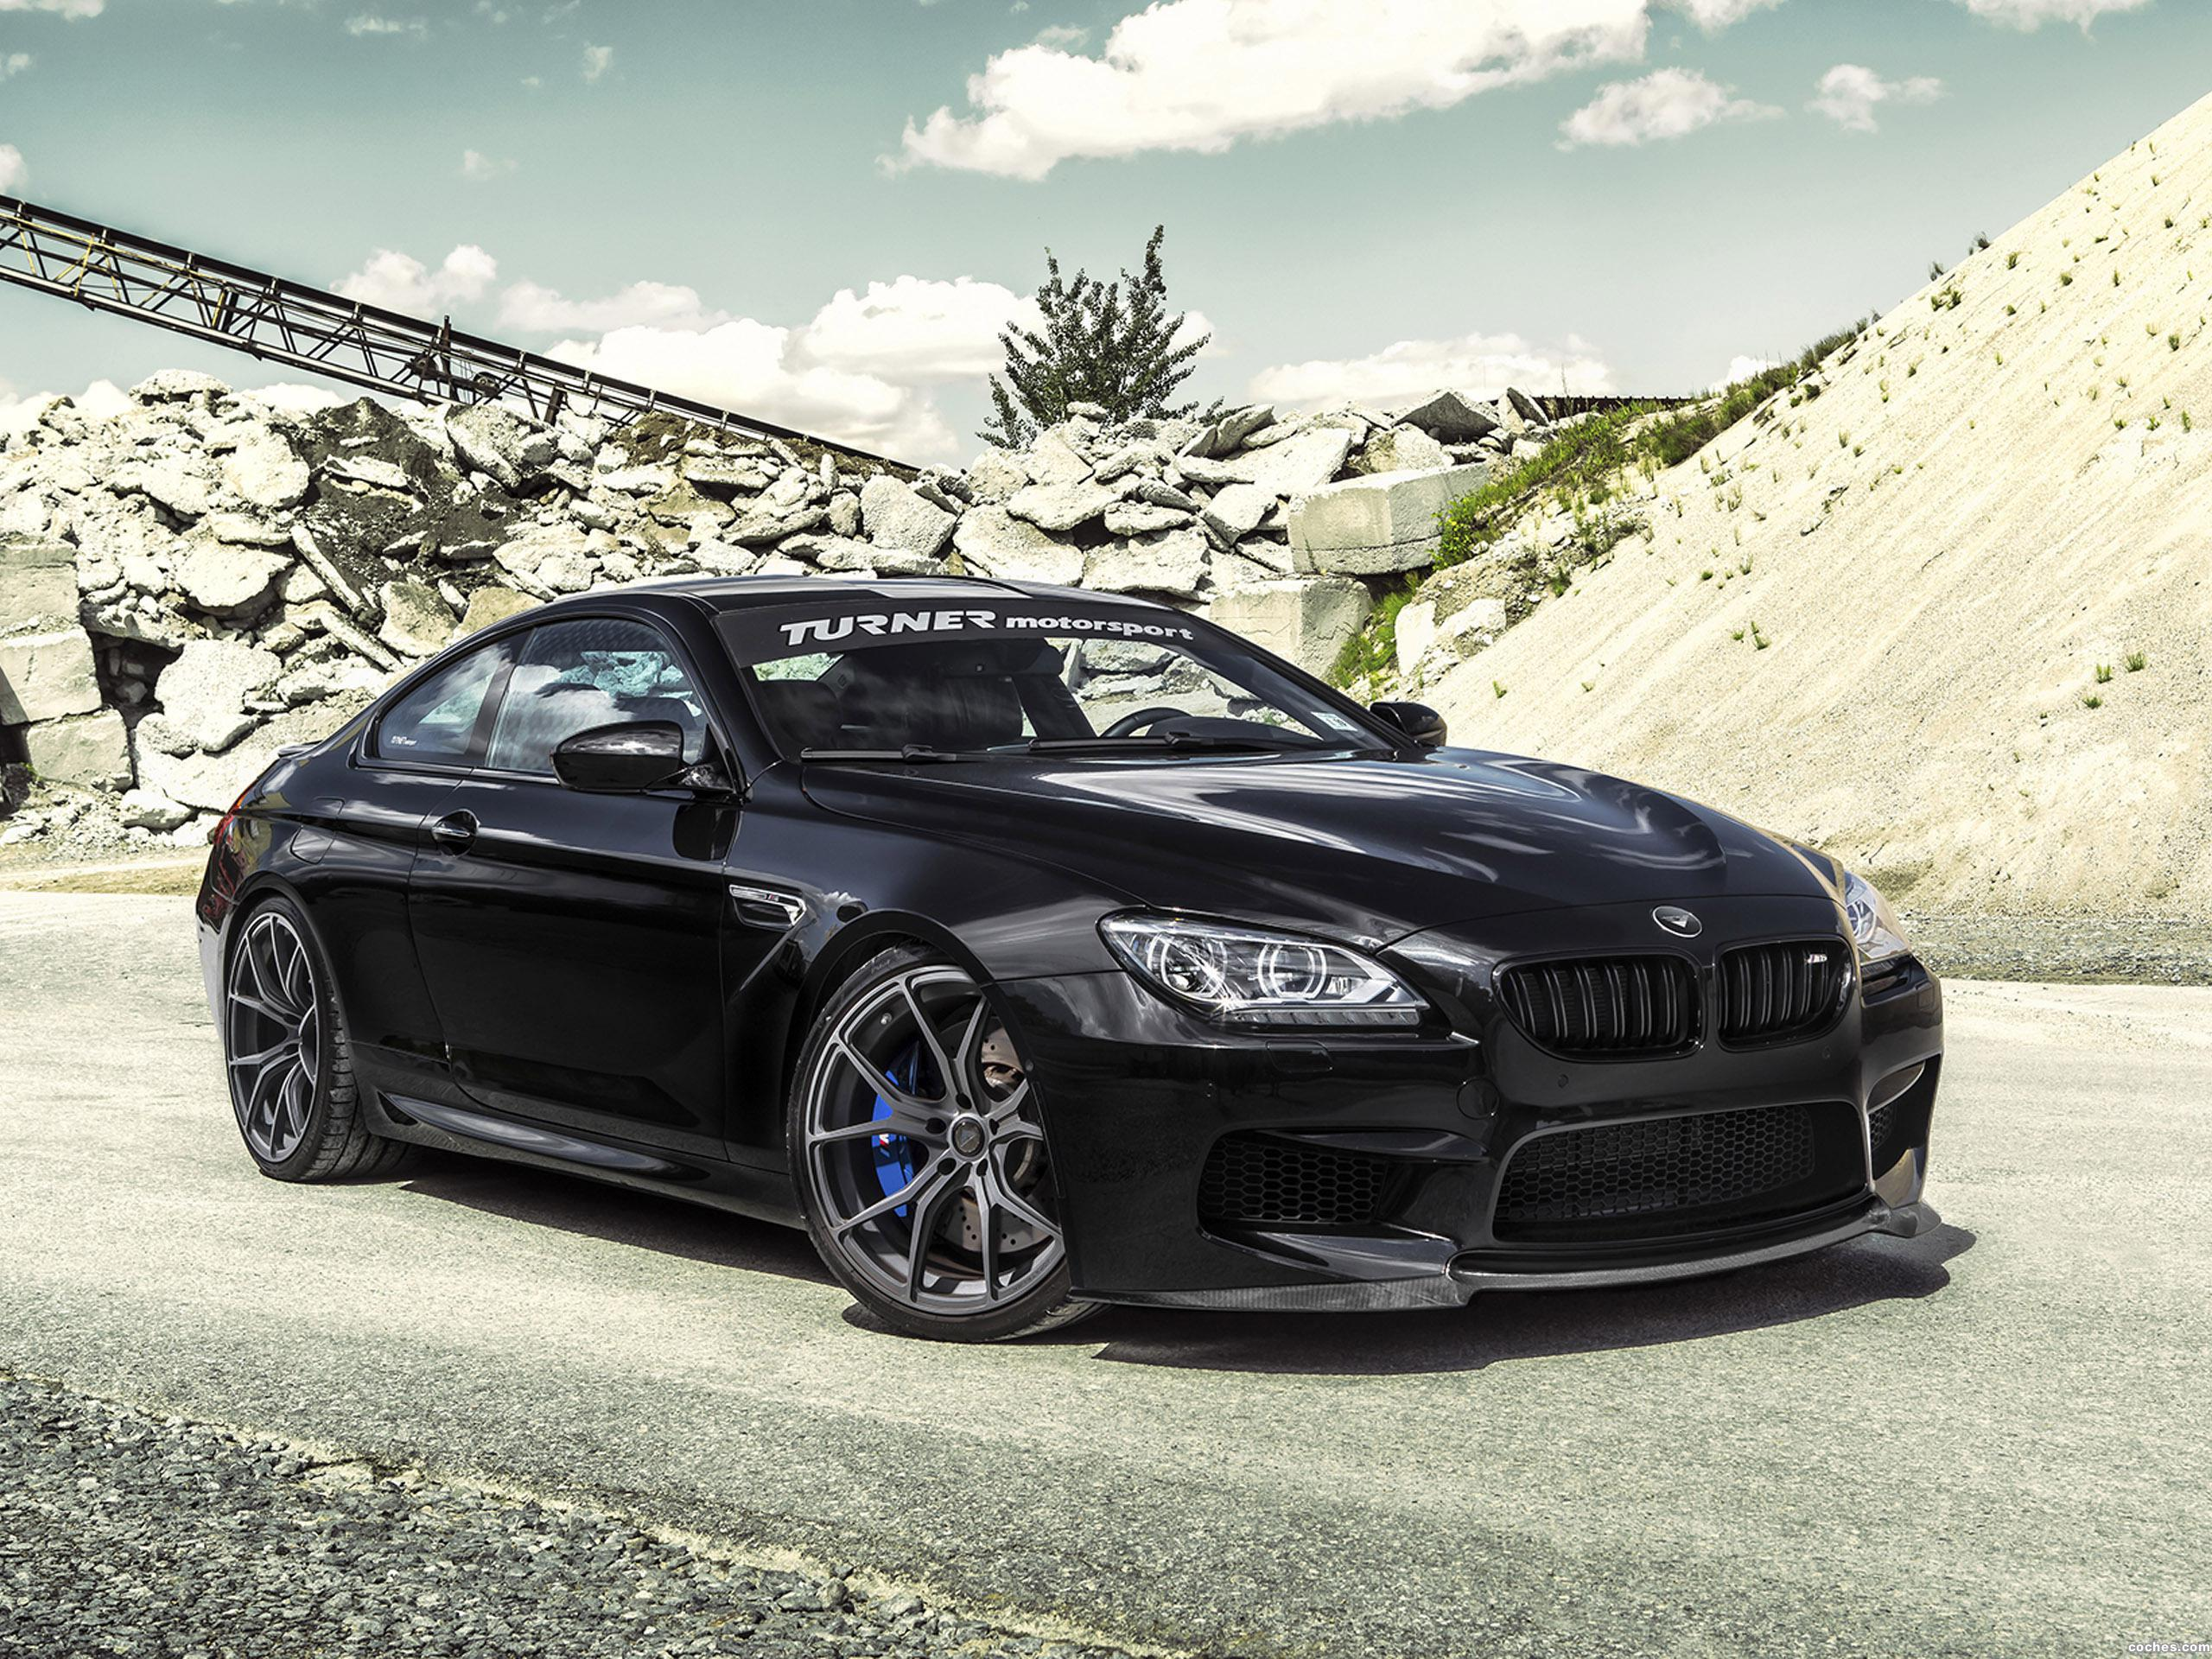 Foto 0 de Vorsteiner BMW M6 Coupe Aero Package F13 2014